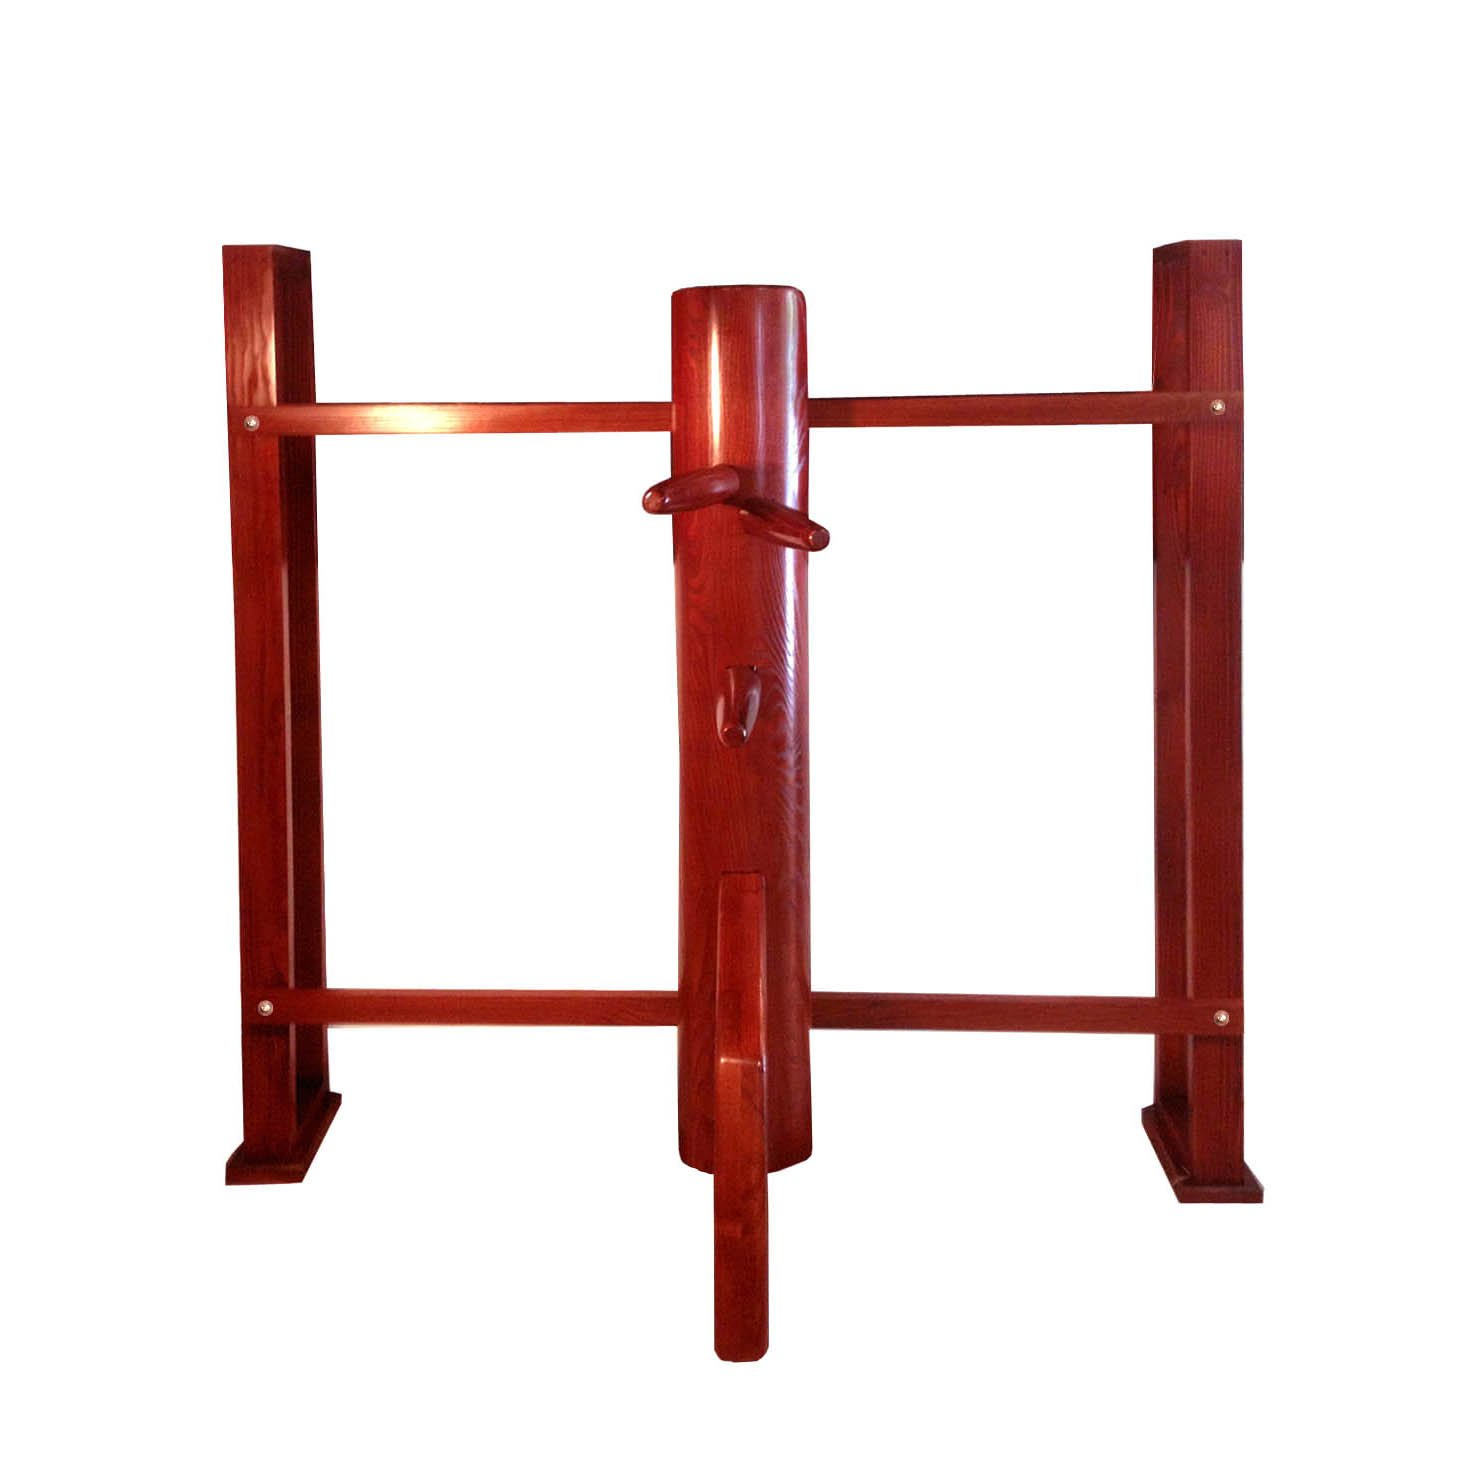 Wing Chun Dummy with Wall Mounted Stand by wingchundummys.com